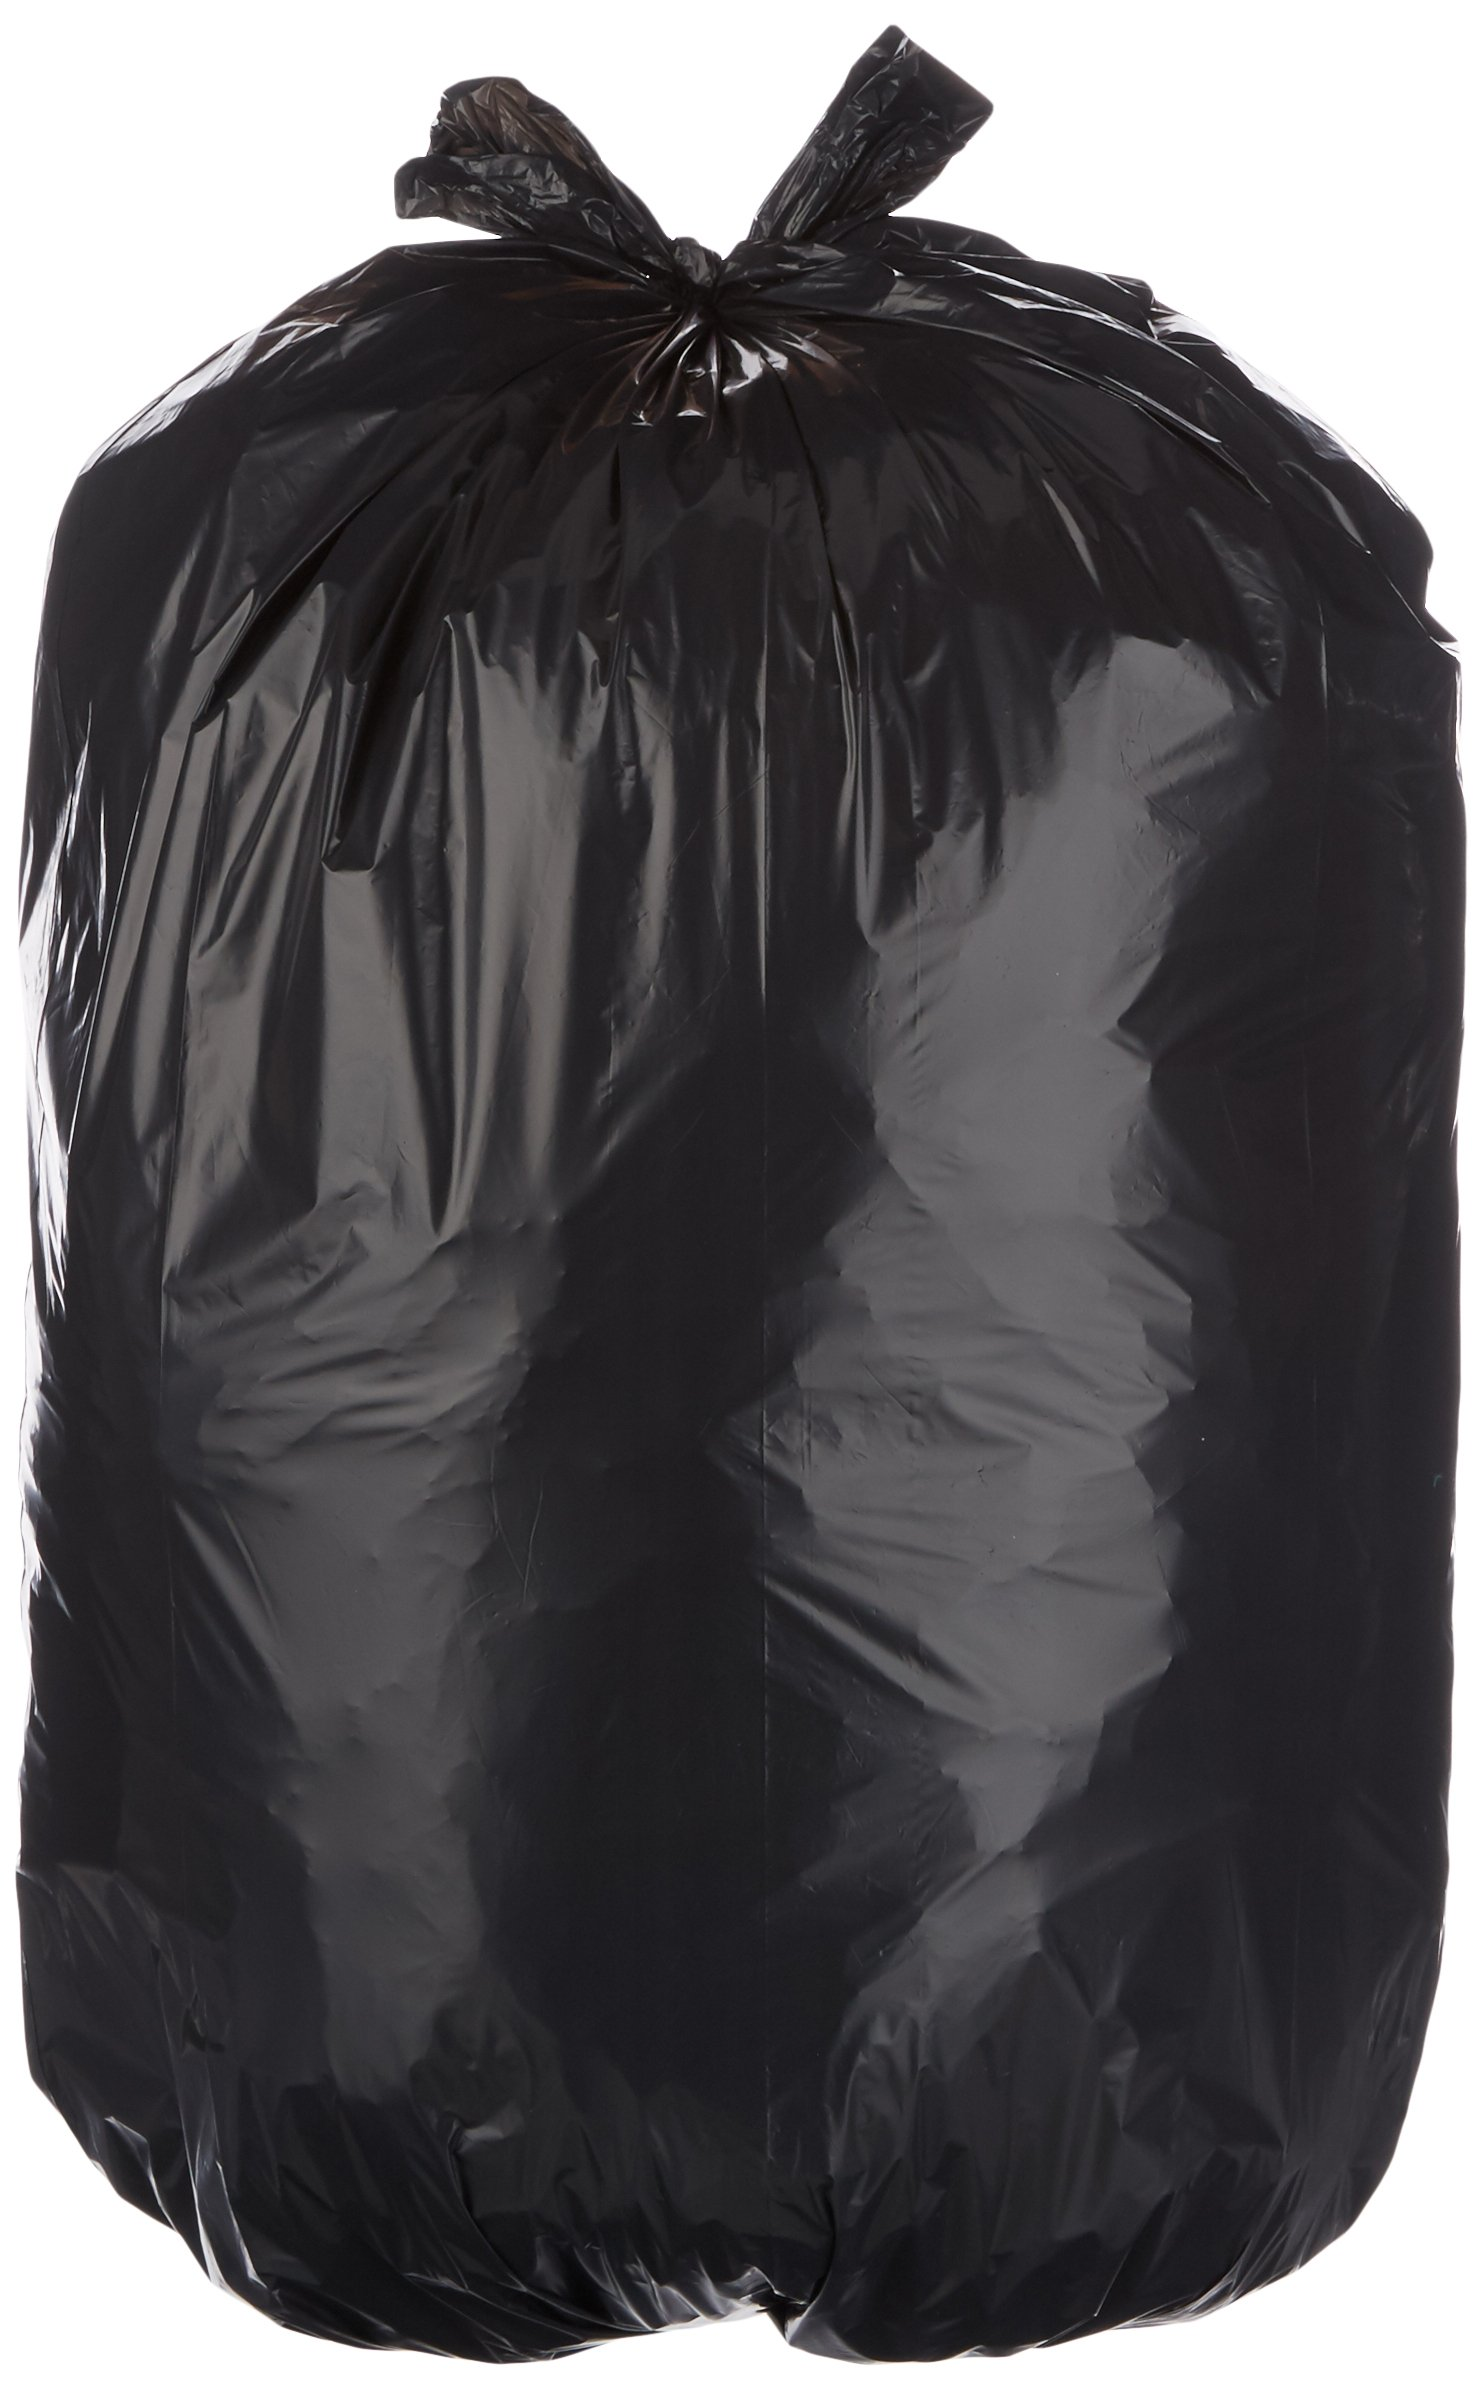 AmazonBasics 23 Gallon Slim Trash Can Liner Bag, 1.1 mil, Black, 250-Count by AmazonBasics